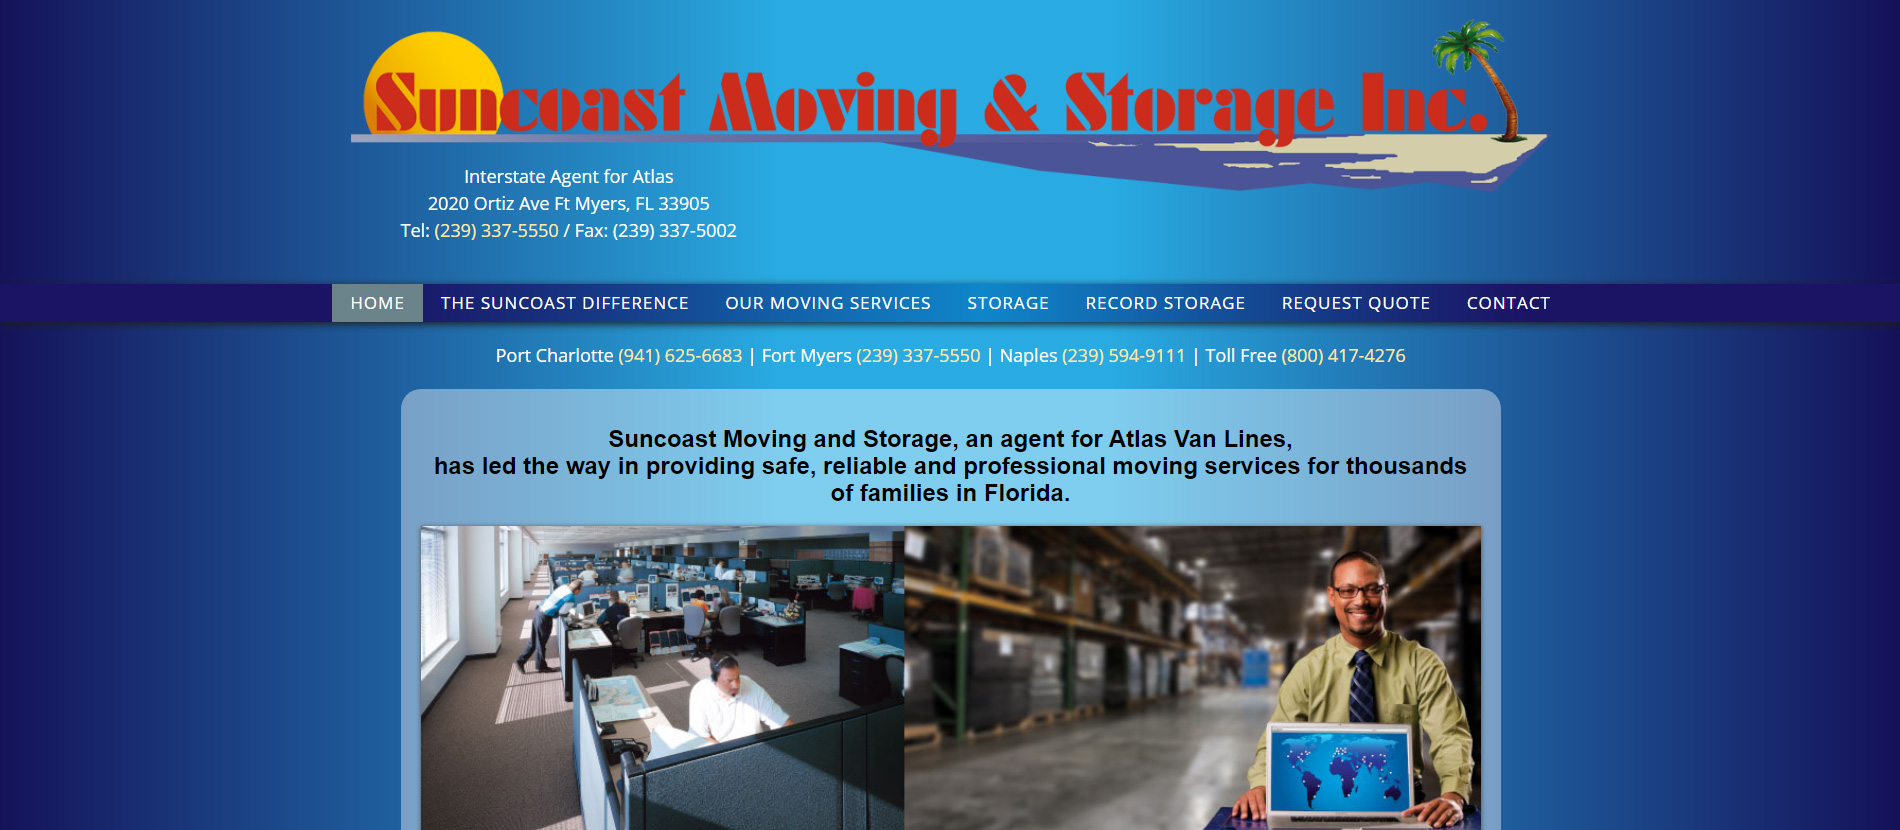 Suncoast Moving and Storage